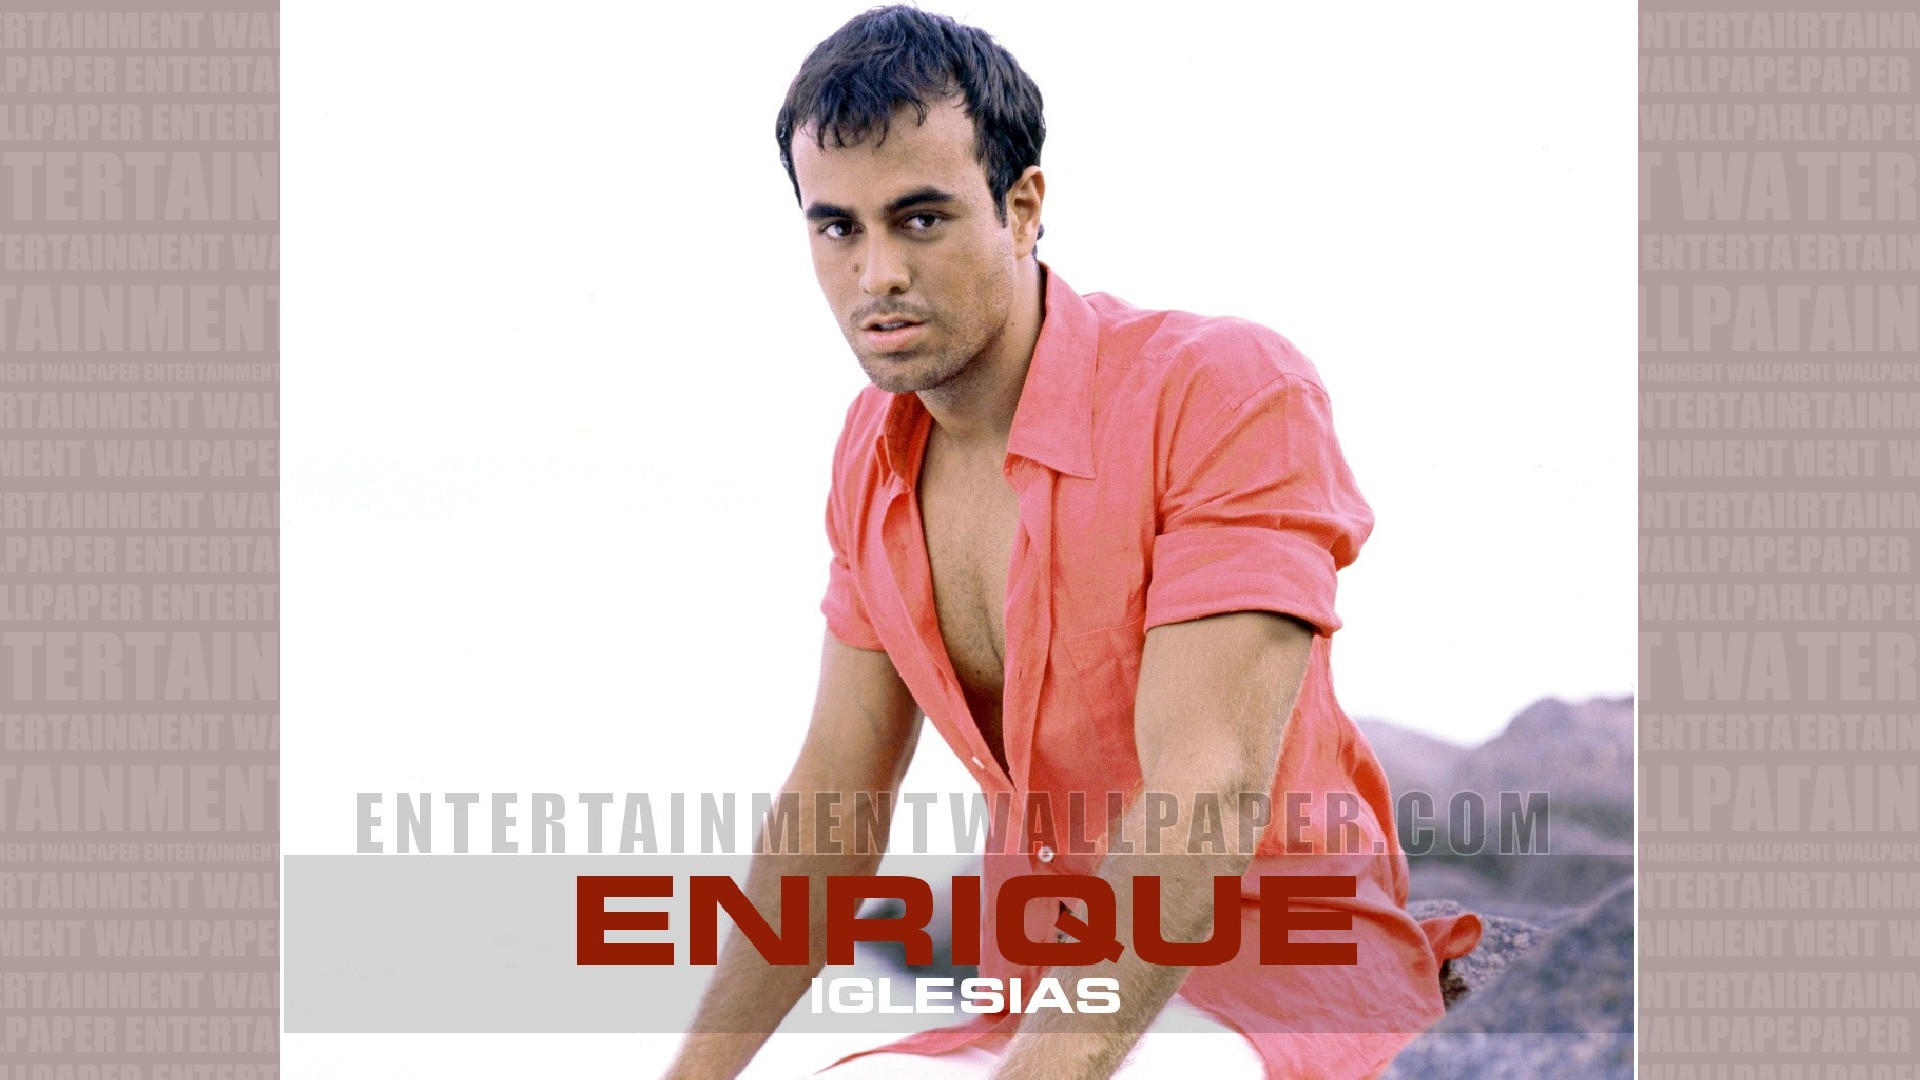 Enrique Iglesias Wallpapers (66+ images)